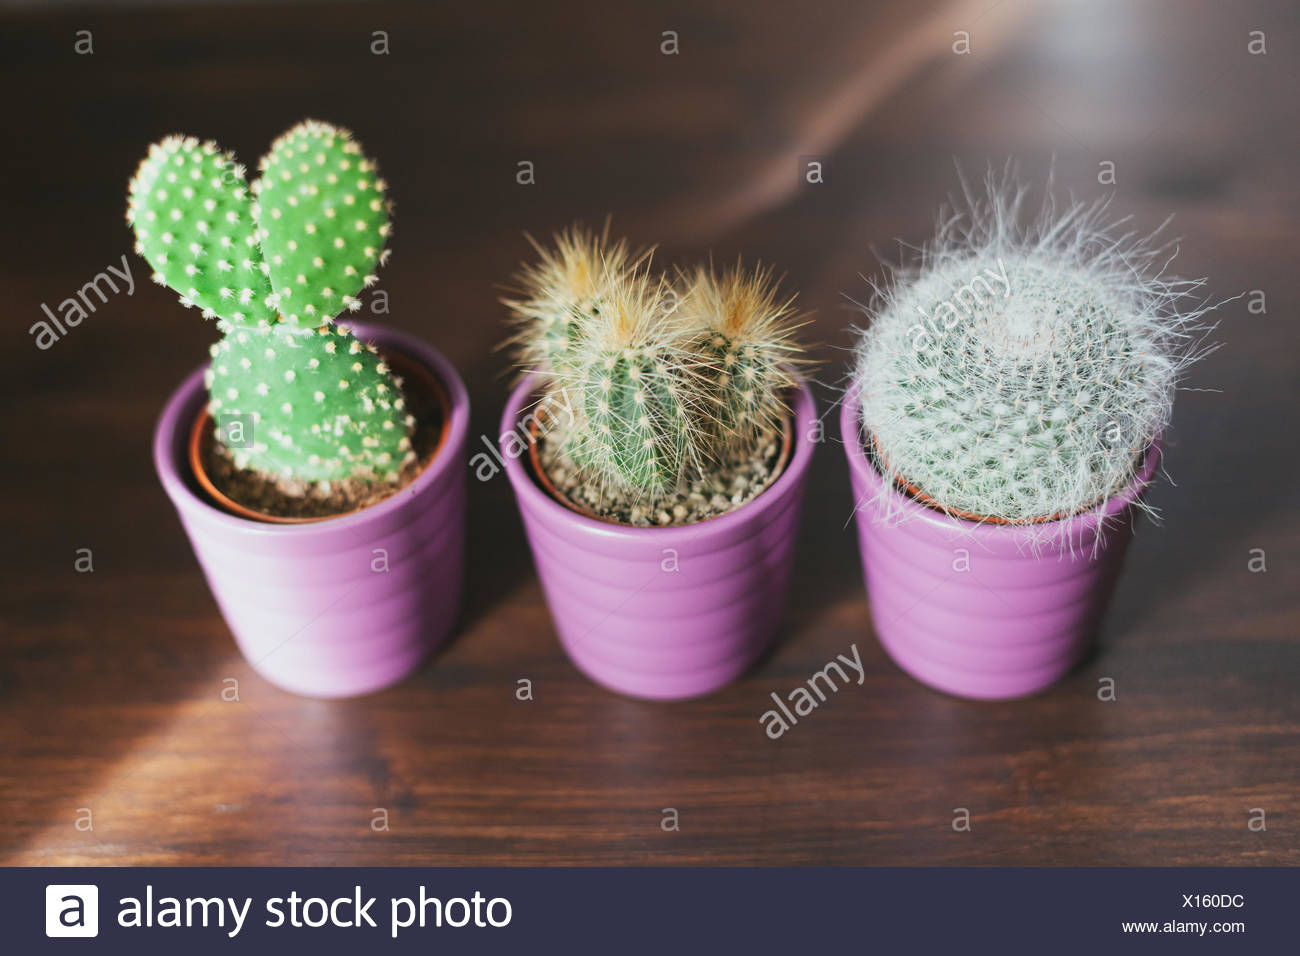 High Angle View Of Potted Cactus On Hardwood Floor - Stock Image